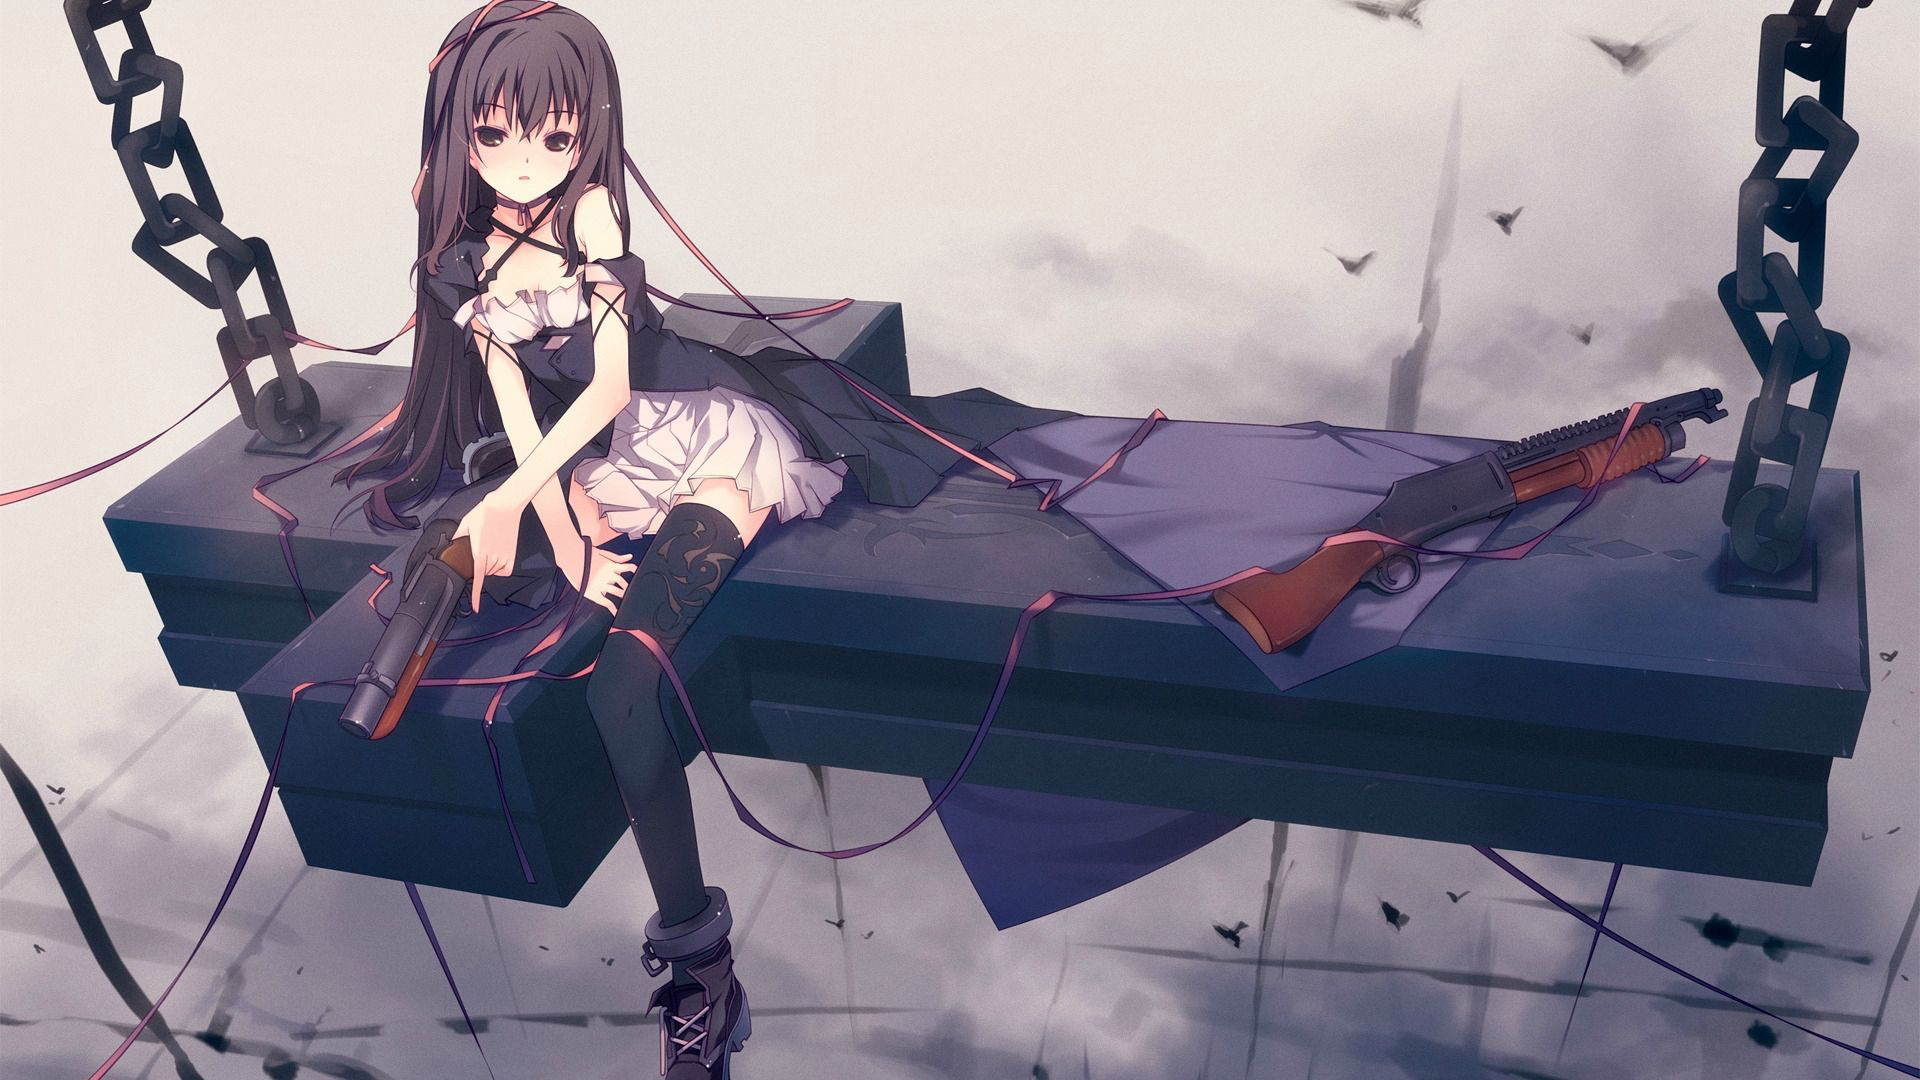 152 anime wallpaper examples for your desktop background